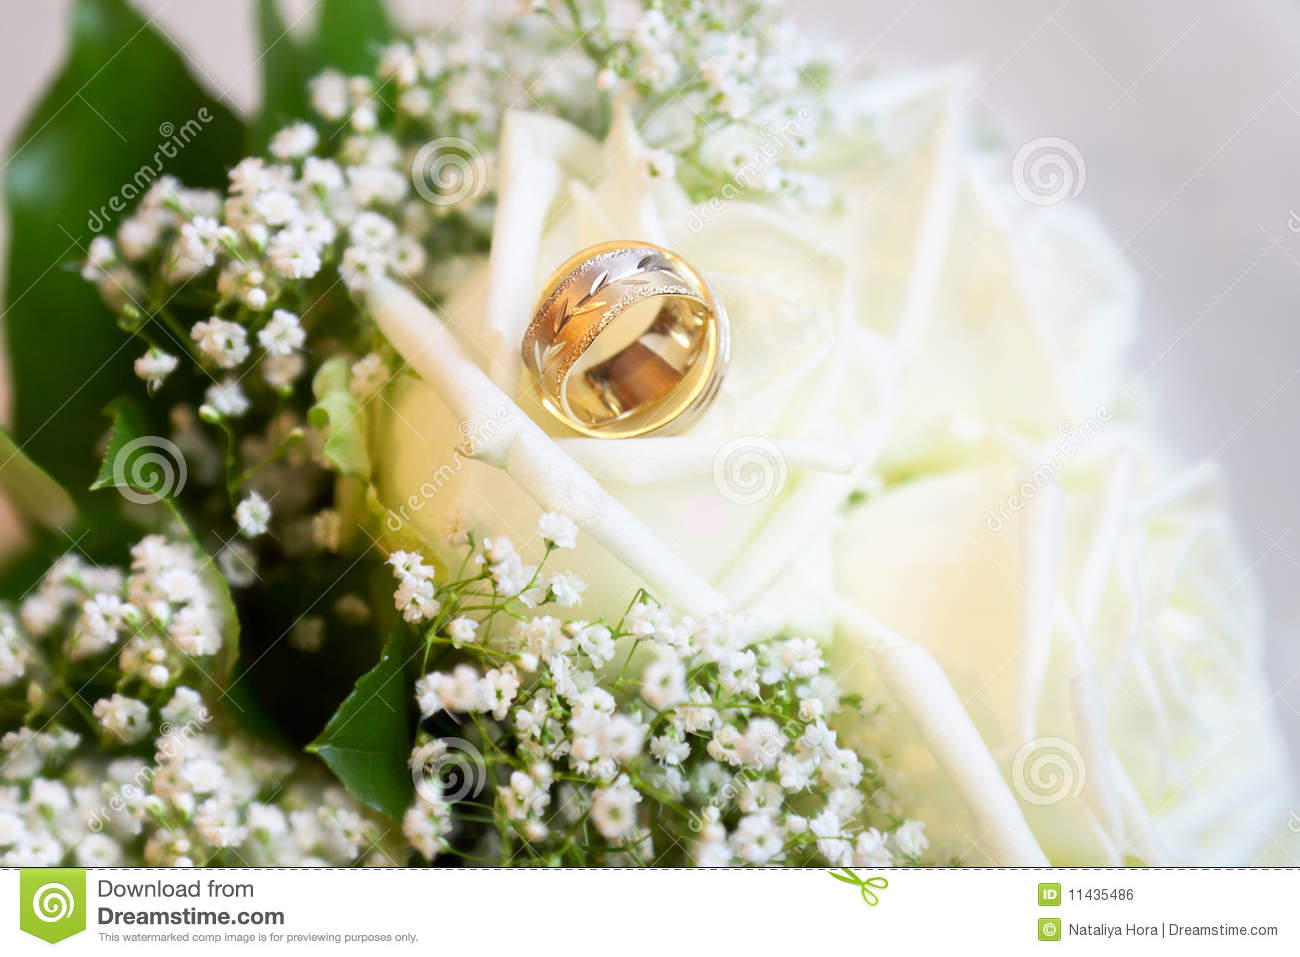 wallpaper bouquet wedding download roses hands rings